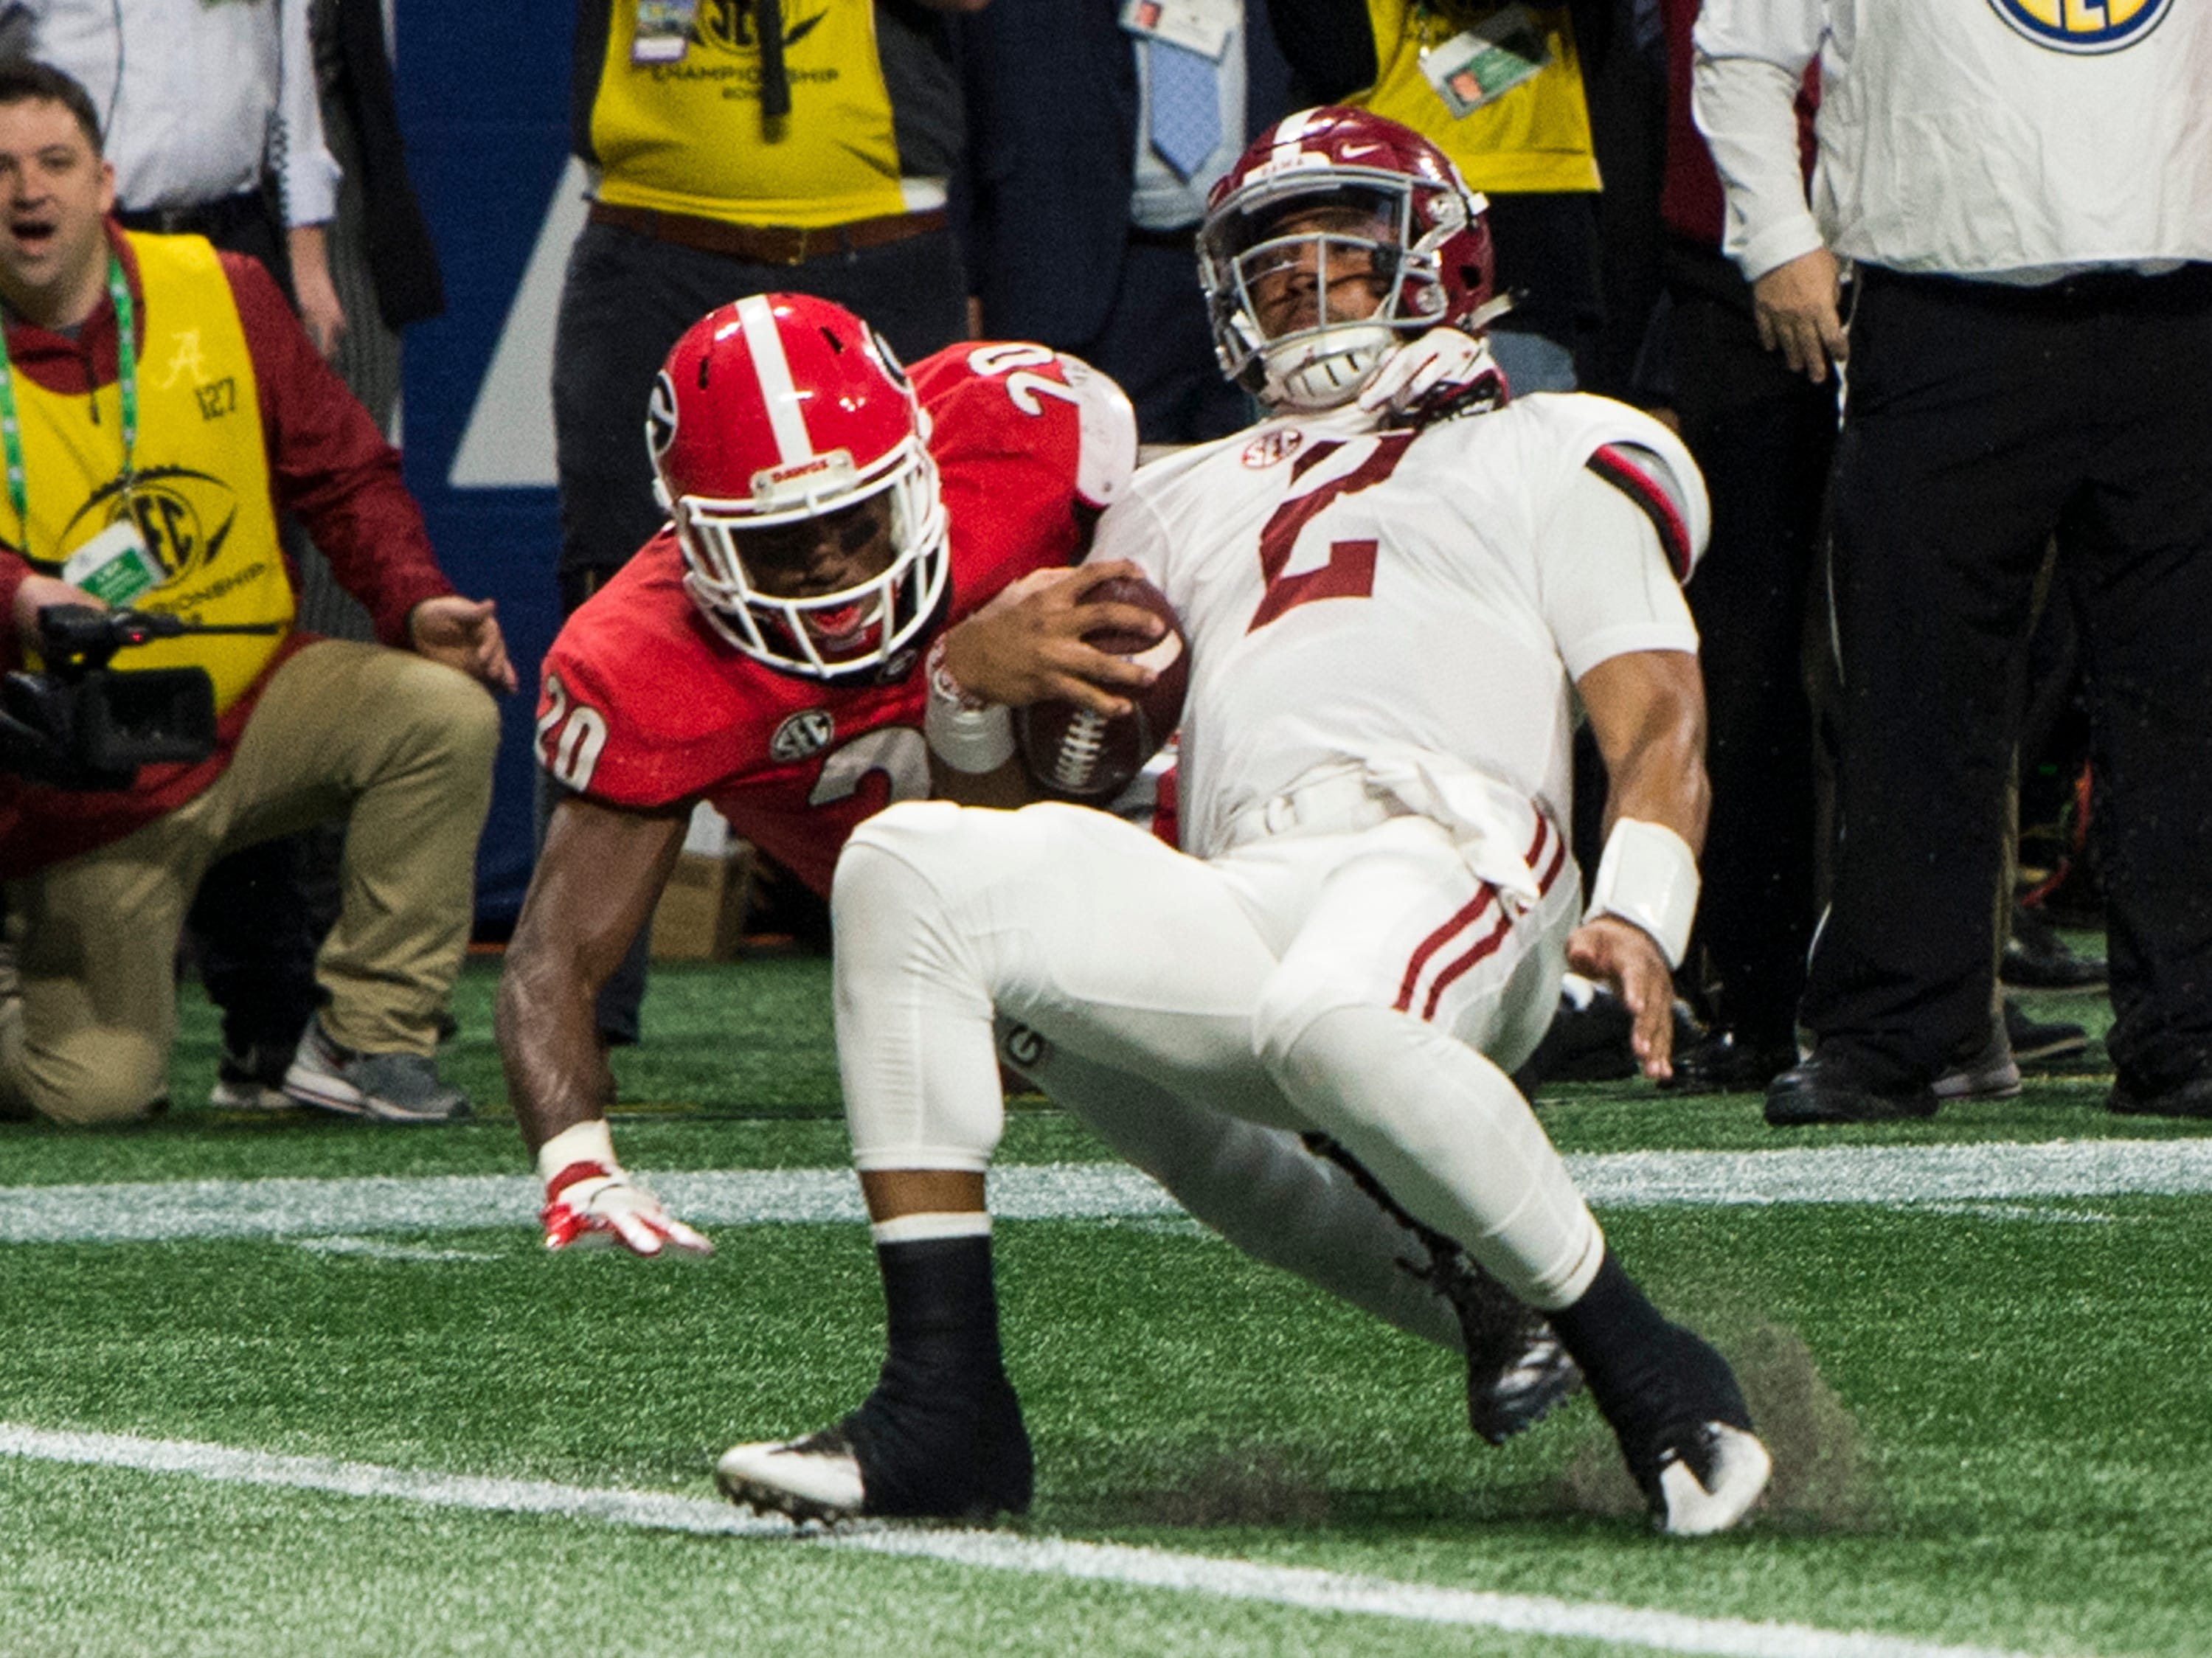 Alabama quarterback Jalen Hurts (2) pushes his way across the goal line for a touchdown during the SEC Championship game at Mercedes-Benz Stadium in Atlanta, Ga., on Saturday Dec. 1, 2018. Alabama defeated Georgia 35-28.